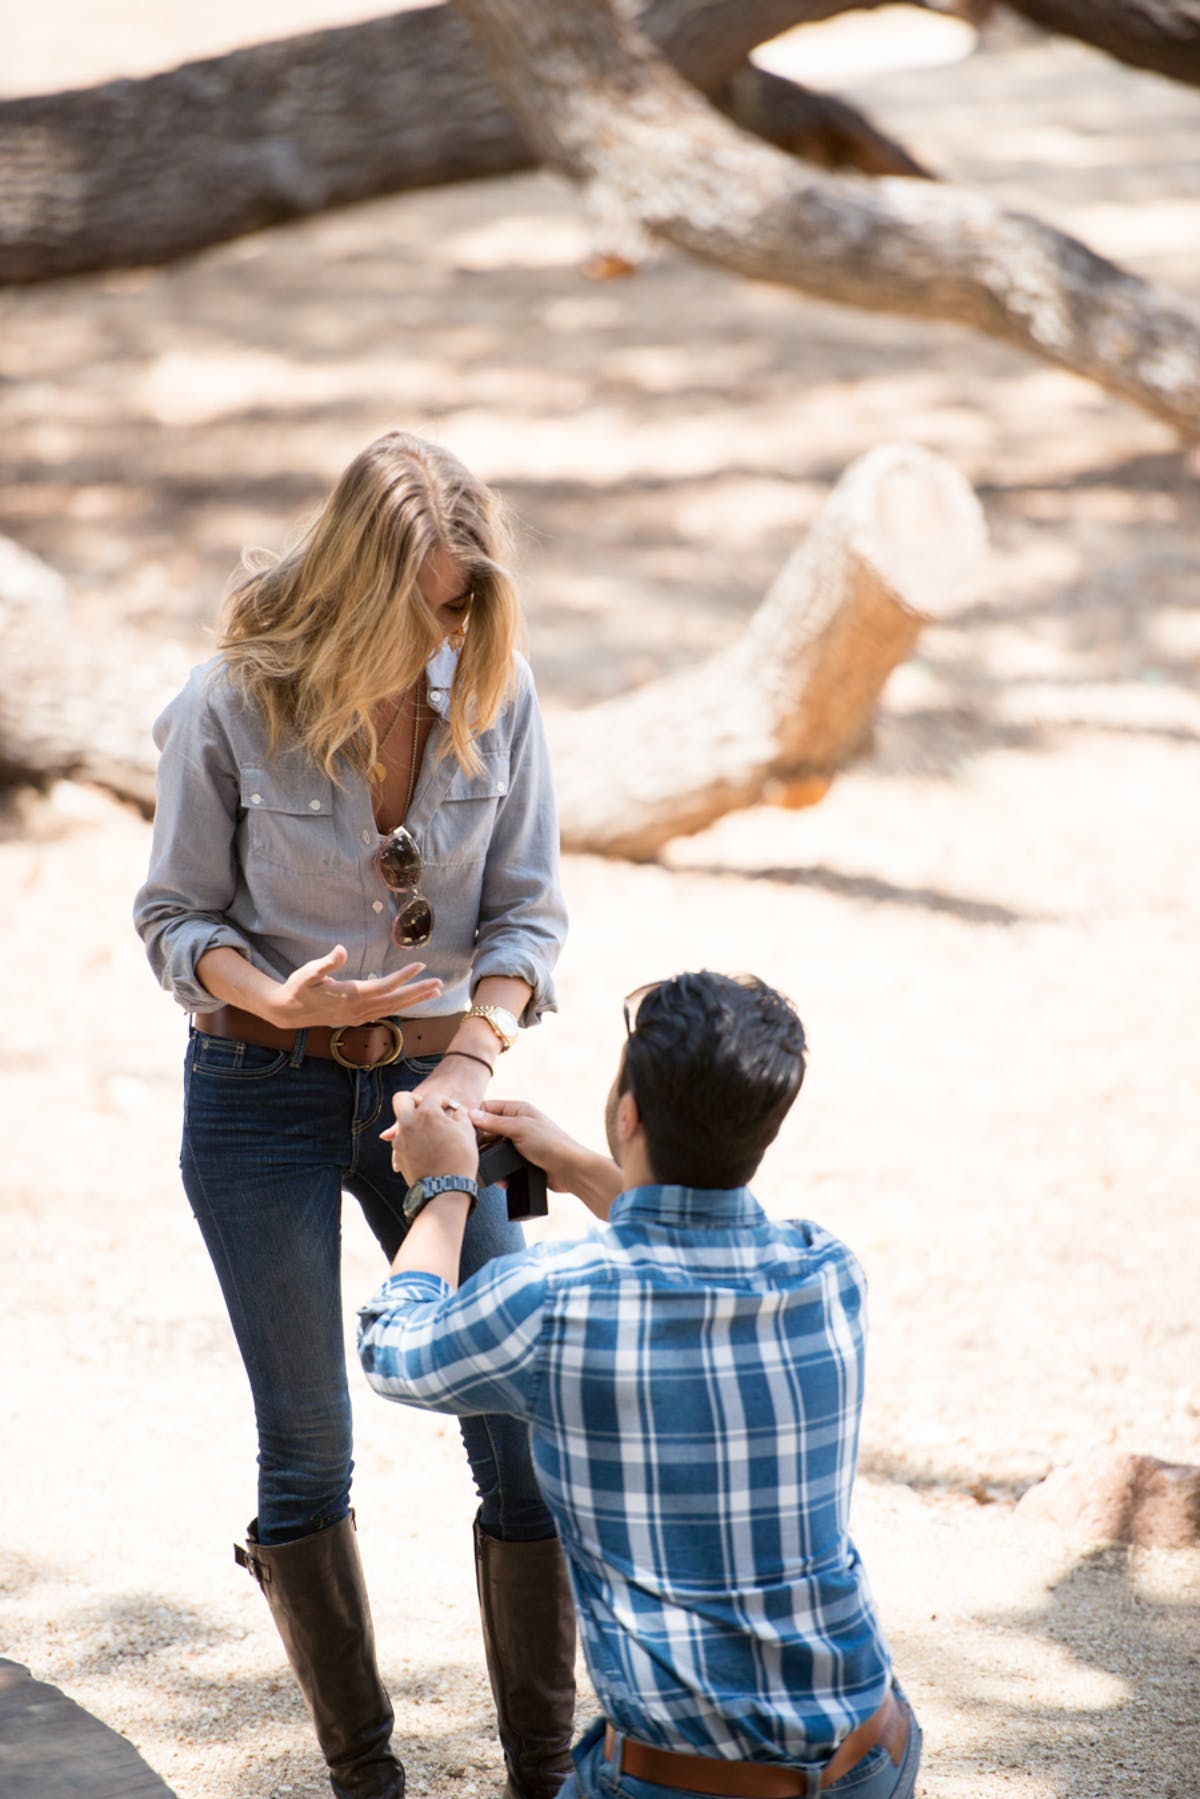 www.santabarbarawedding.com | Michael + Anna Costa Photography | Refugio Ranch | Alegria by Design | Like a Letter Videography | Anna Le Pley Taylor | The Proposal